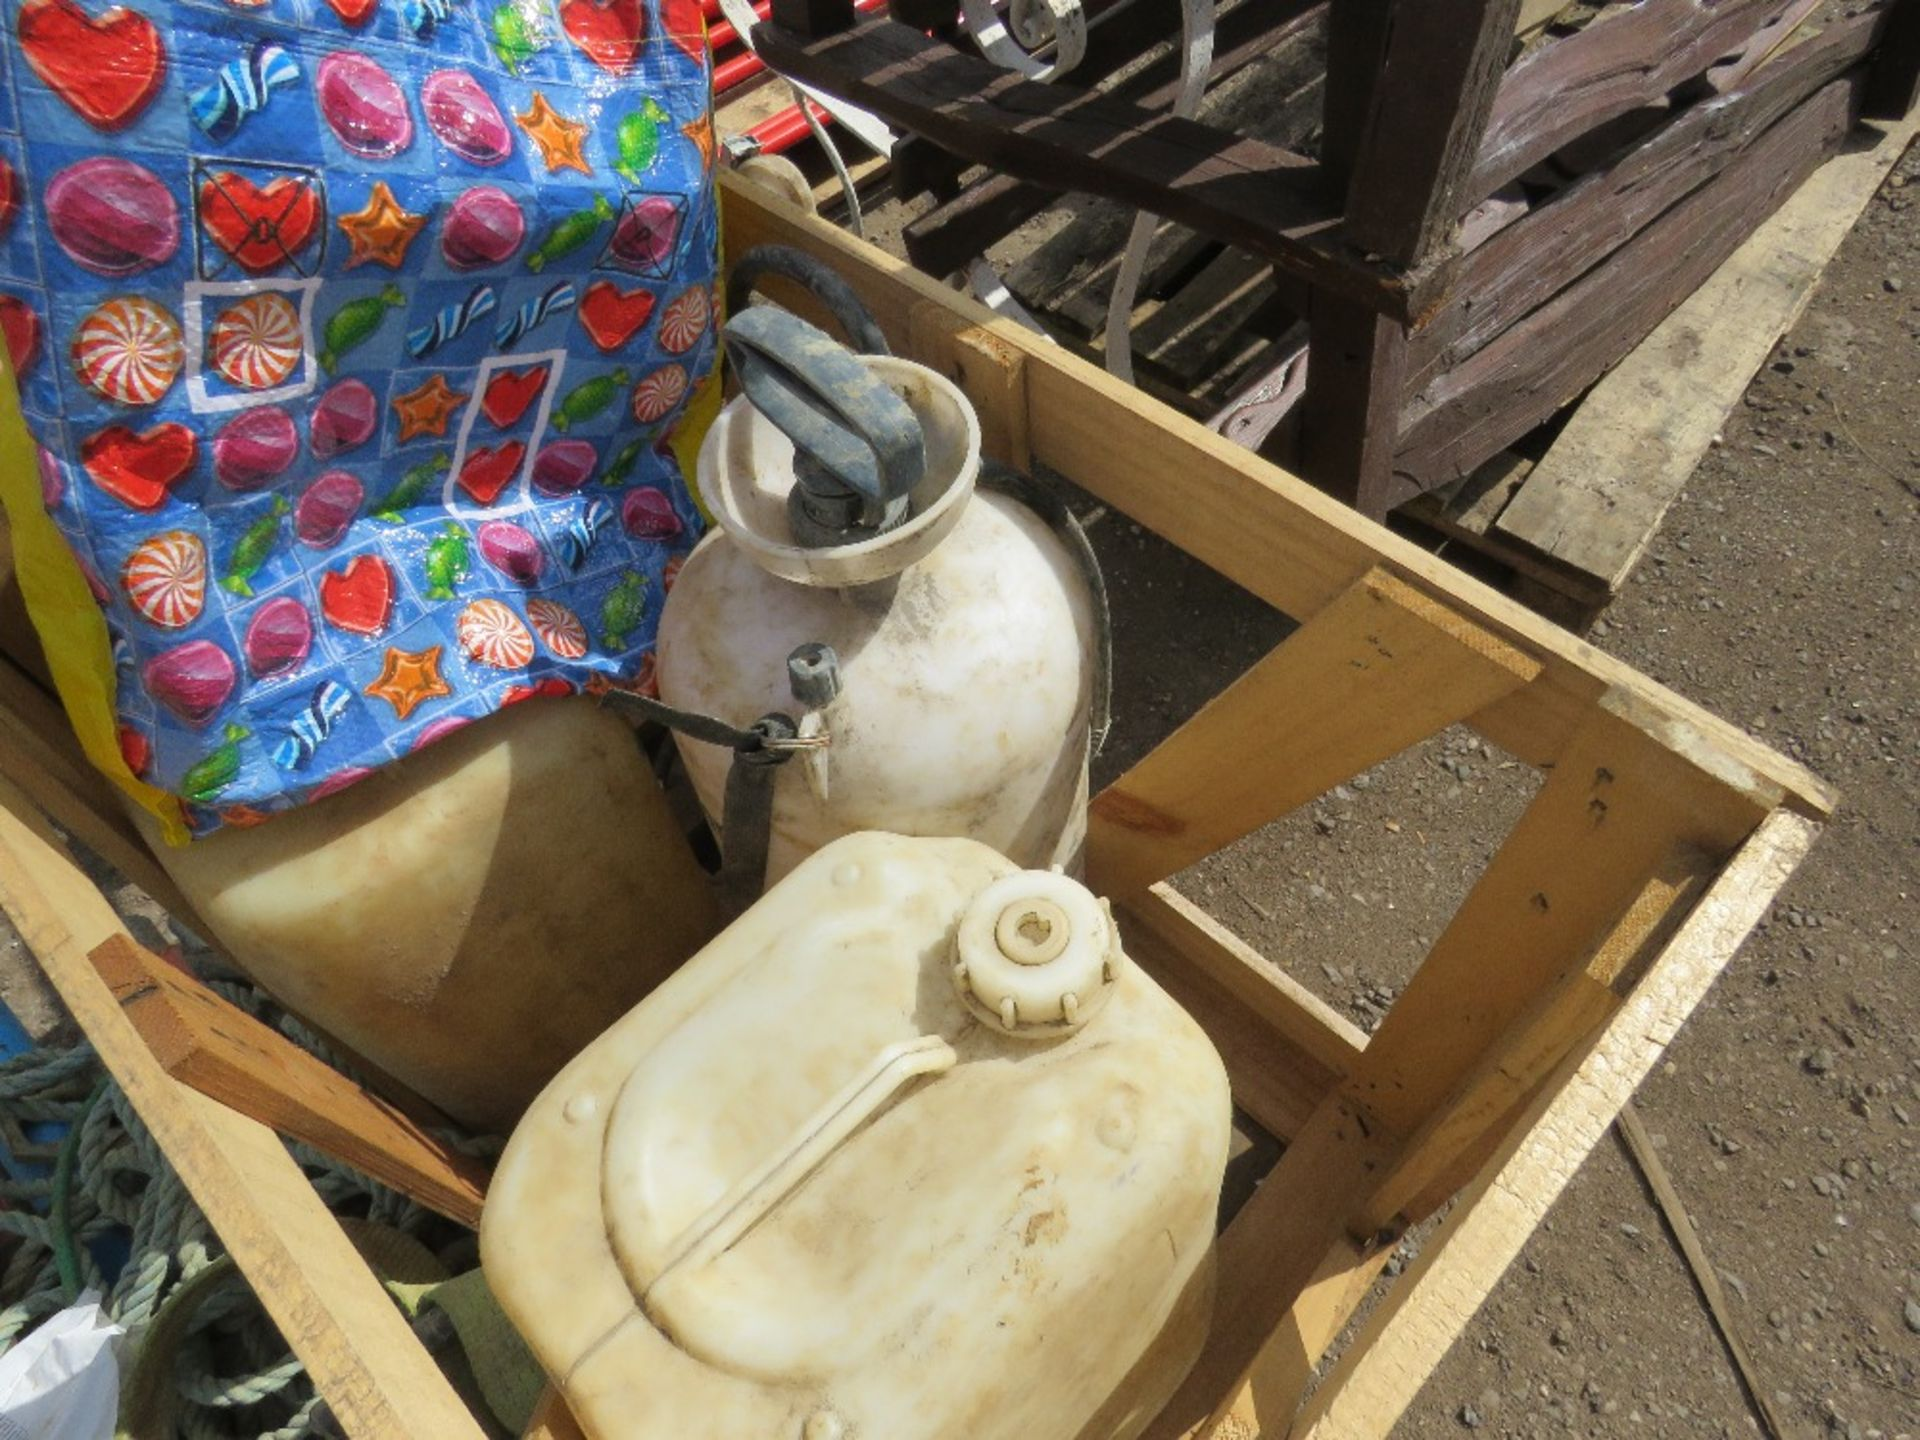 PALLET CONTAINING TOOLS, INCLUDING WET CUT BOTTLES, TOOLS, CABLE RODS ETC. - Image 5 of 5